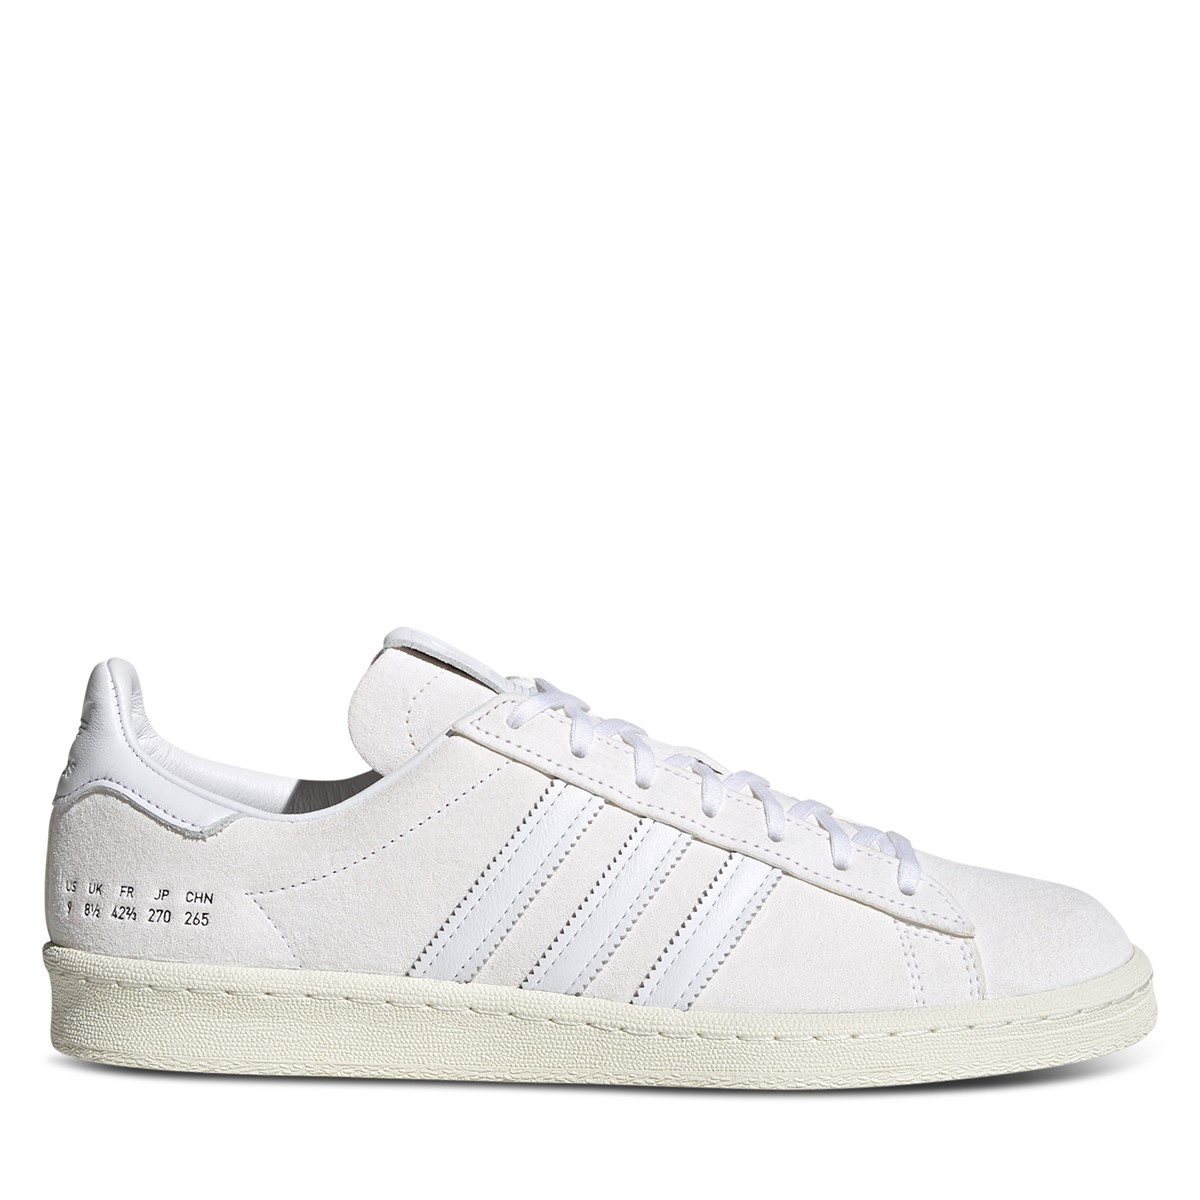 Men's Campus 80 Sneakers in White